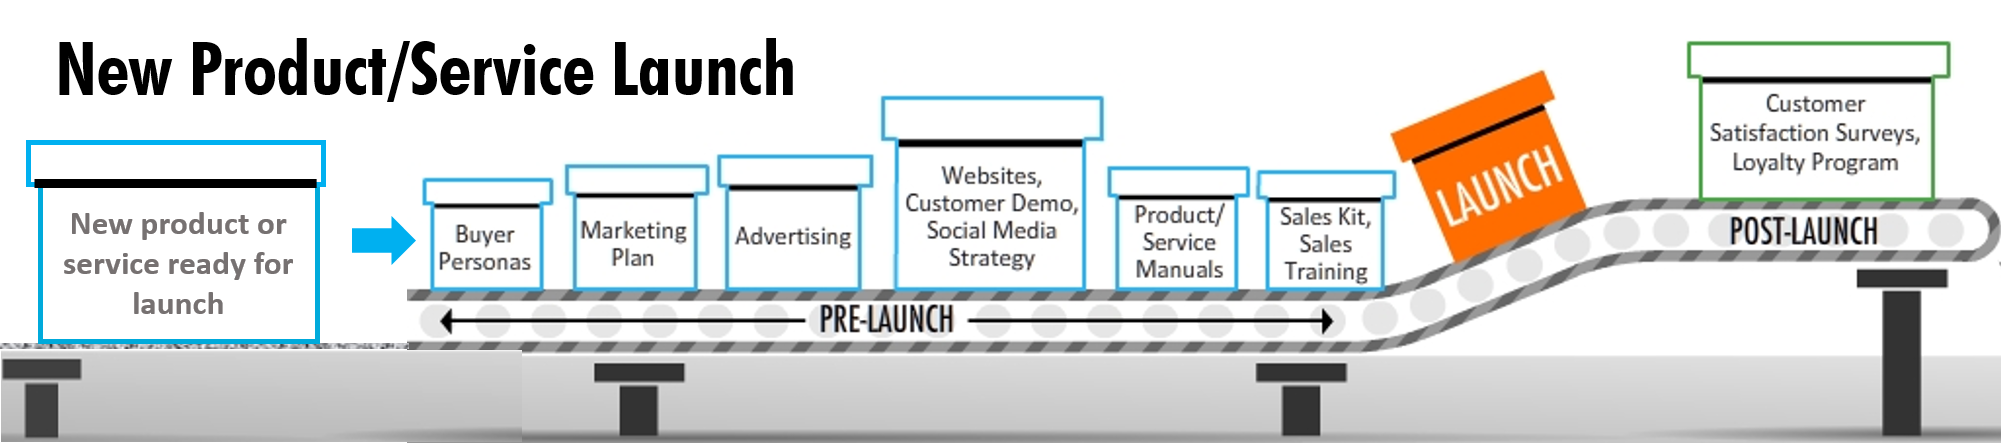 New Product or Service Launch, launching a new product or service, new product launch strategy